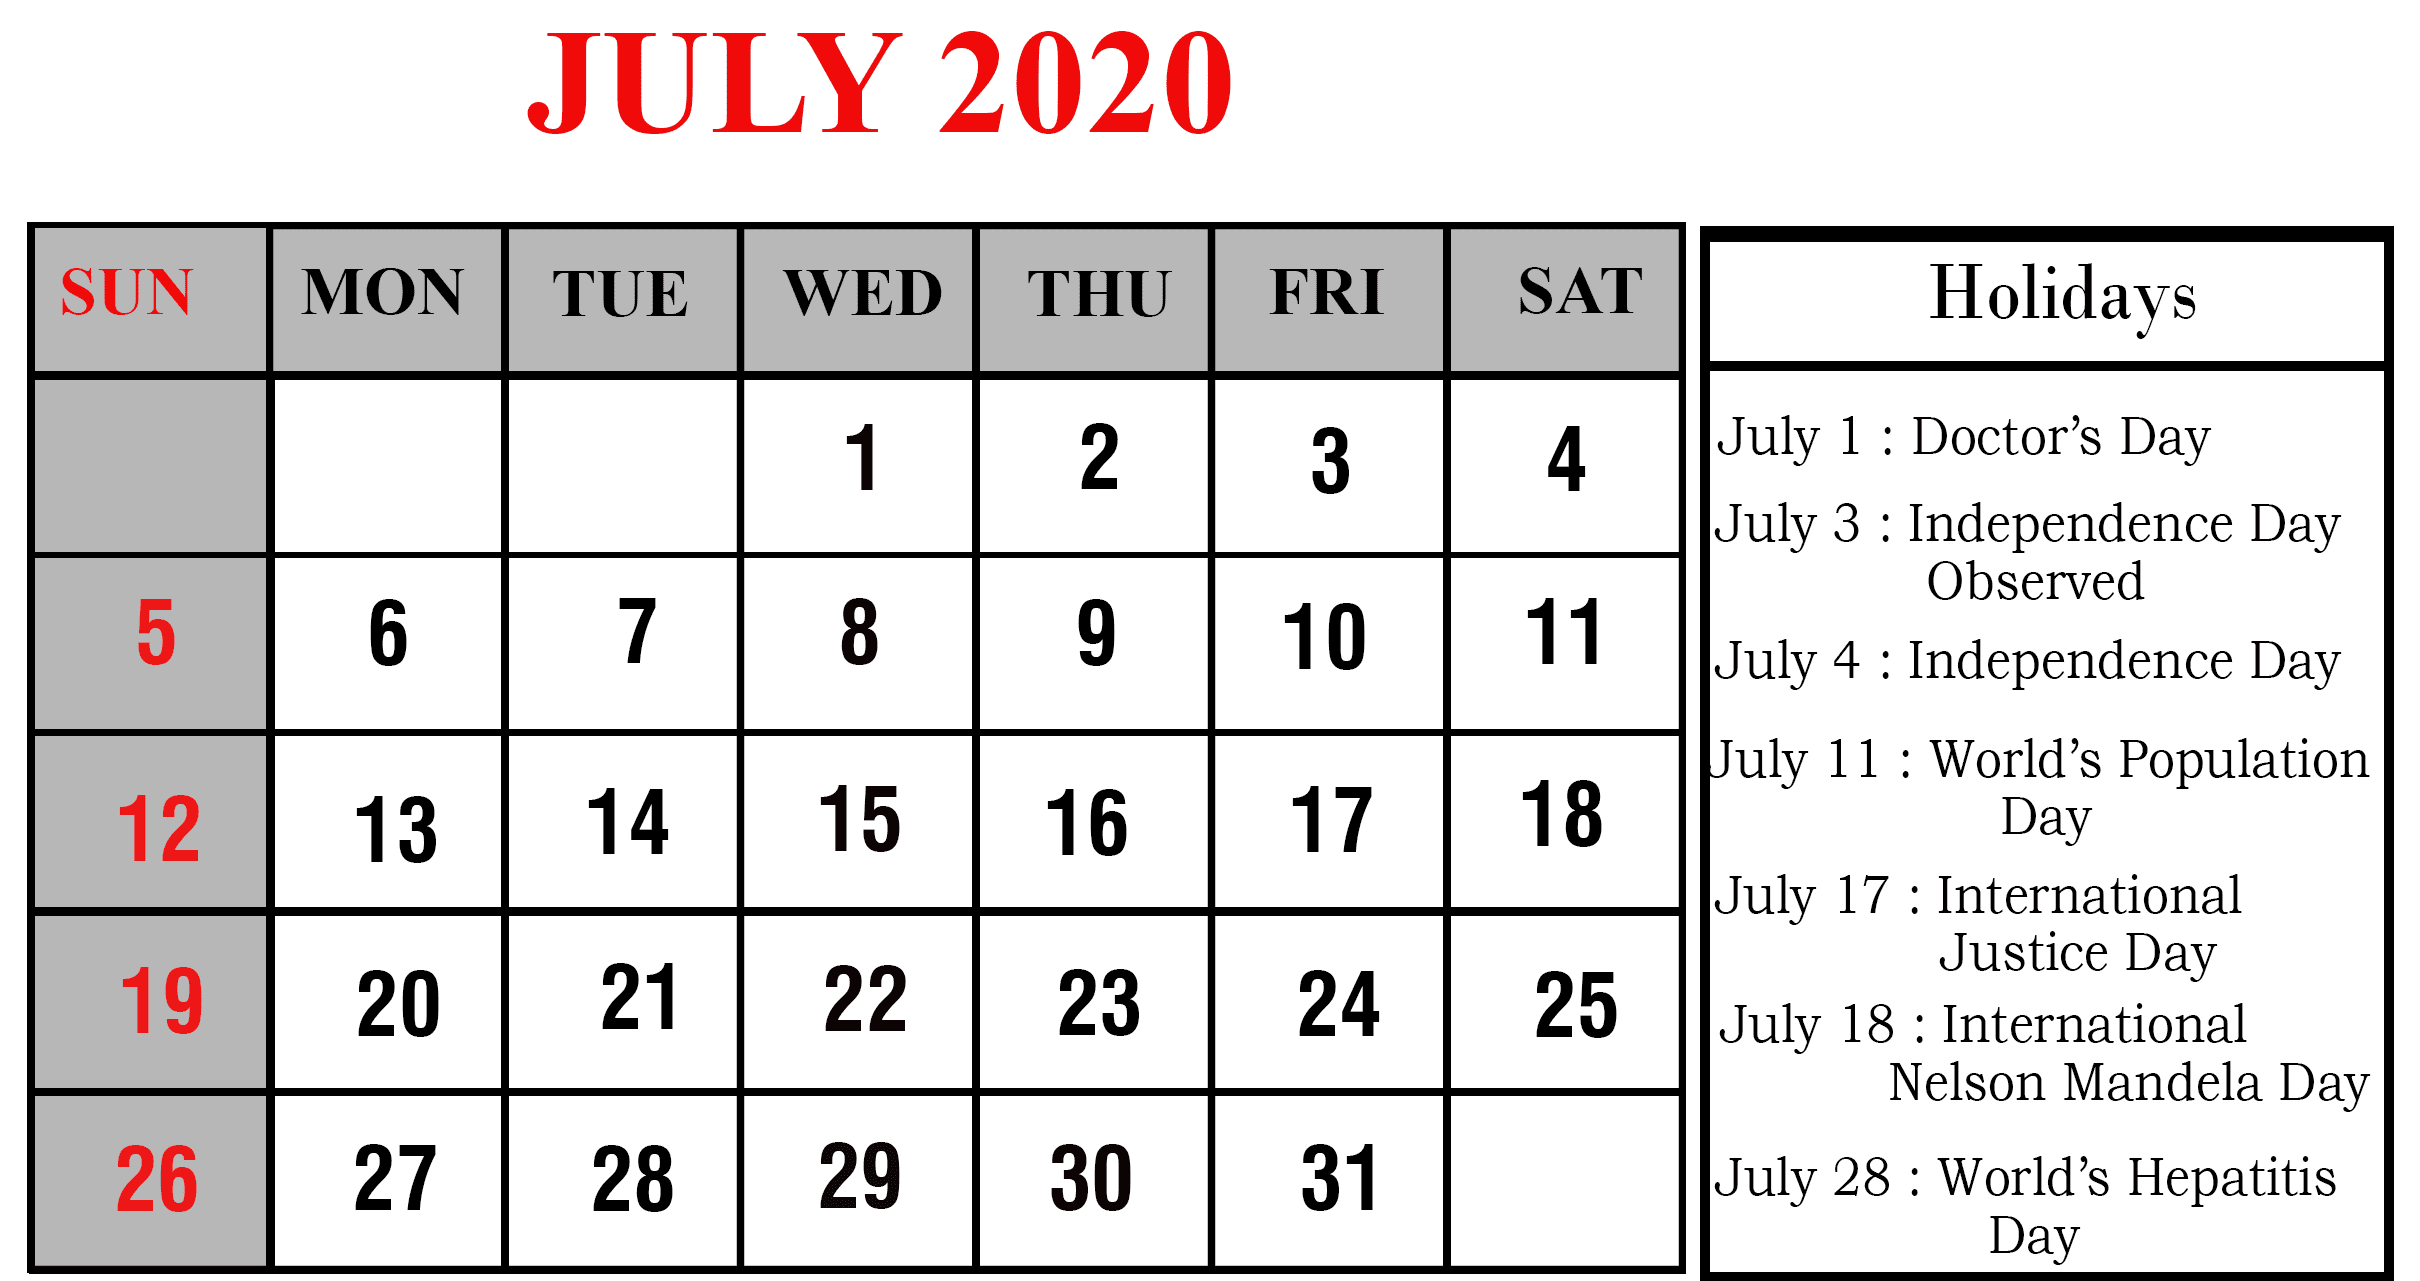 July 2020 Calendar with Holidays Printable